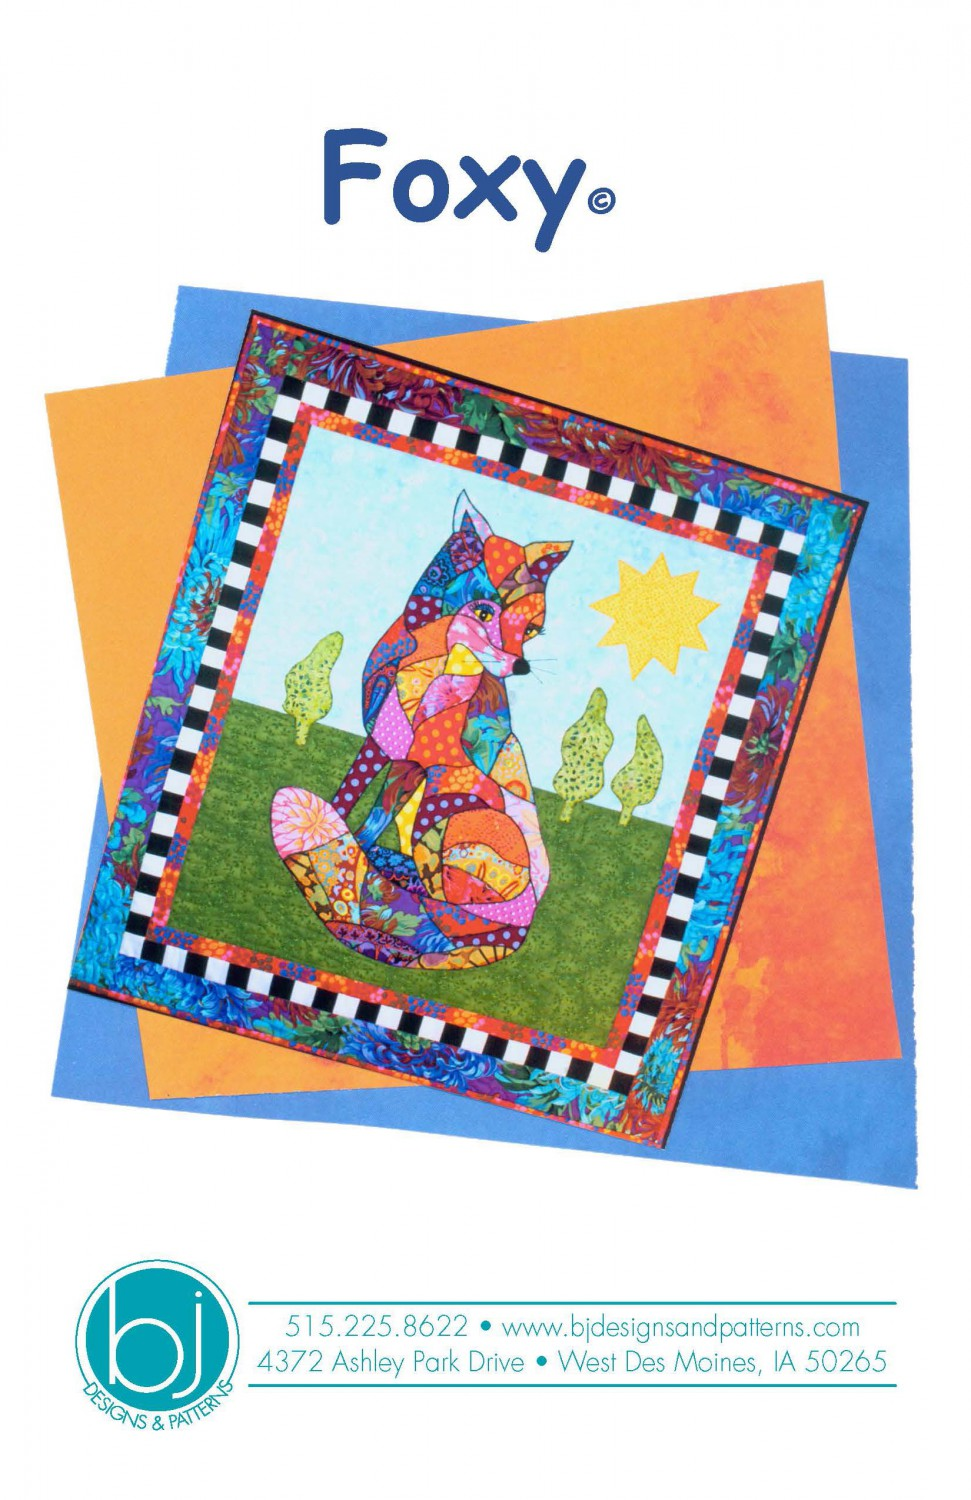 BJ Designs & Patterns Foxy Fox Applique Quilt Pattern Front